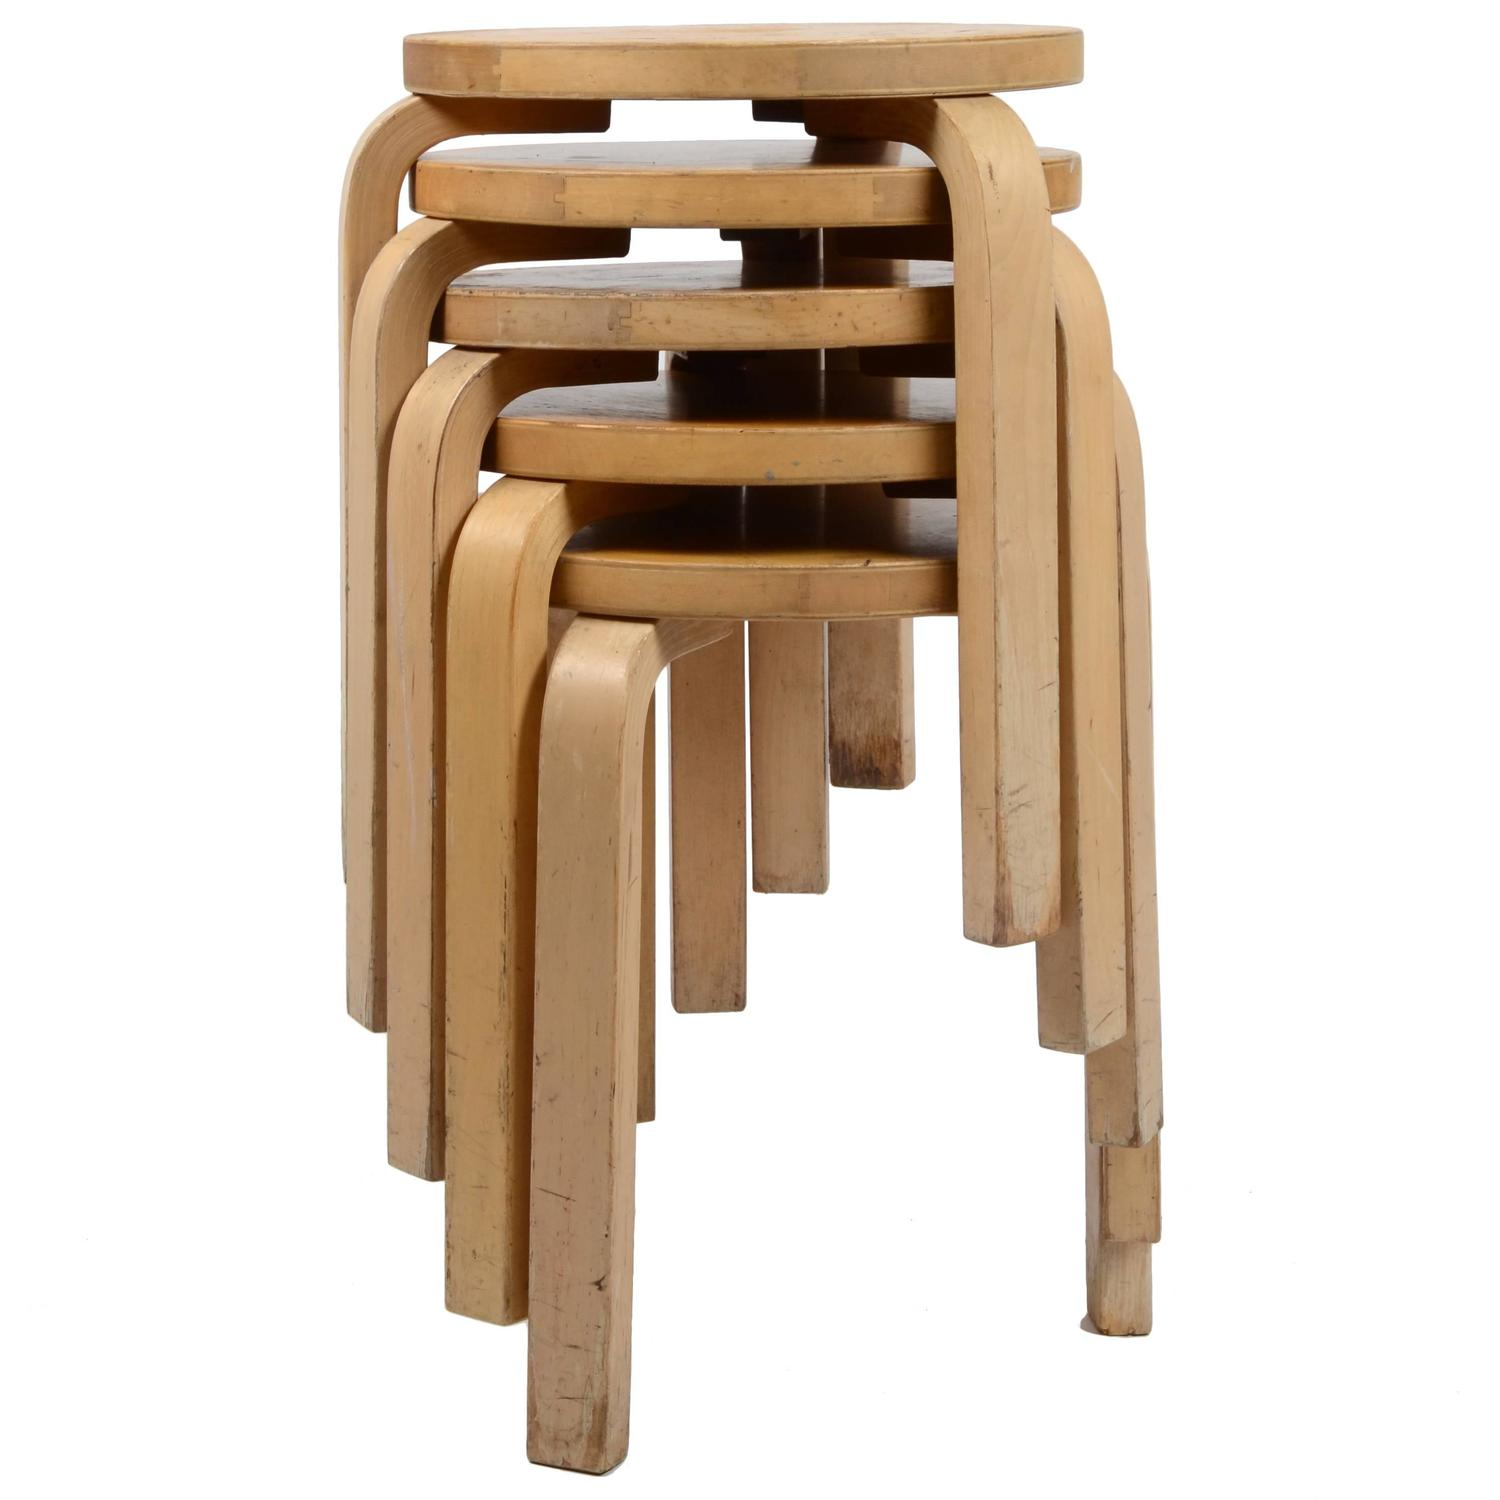 Vintage aalto chair - Five Stacking Stools Model 60 By Alvar Aalto Designed In 1933 For Sale At 1stdibs